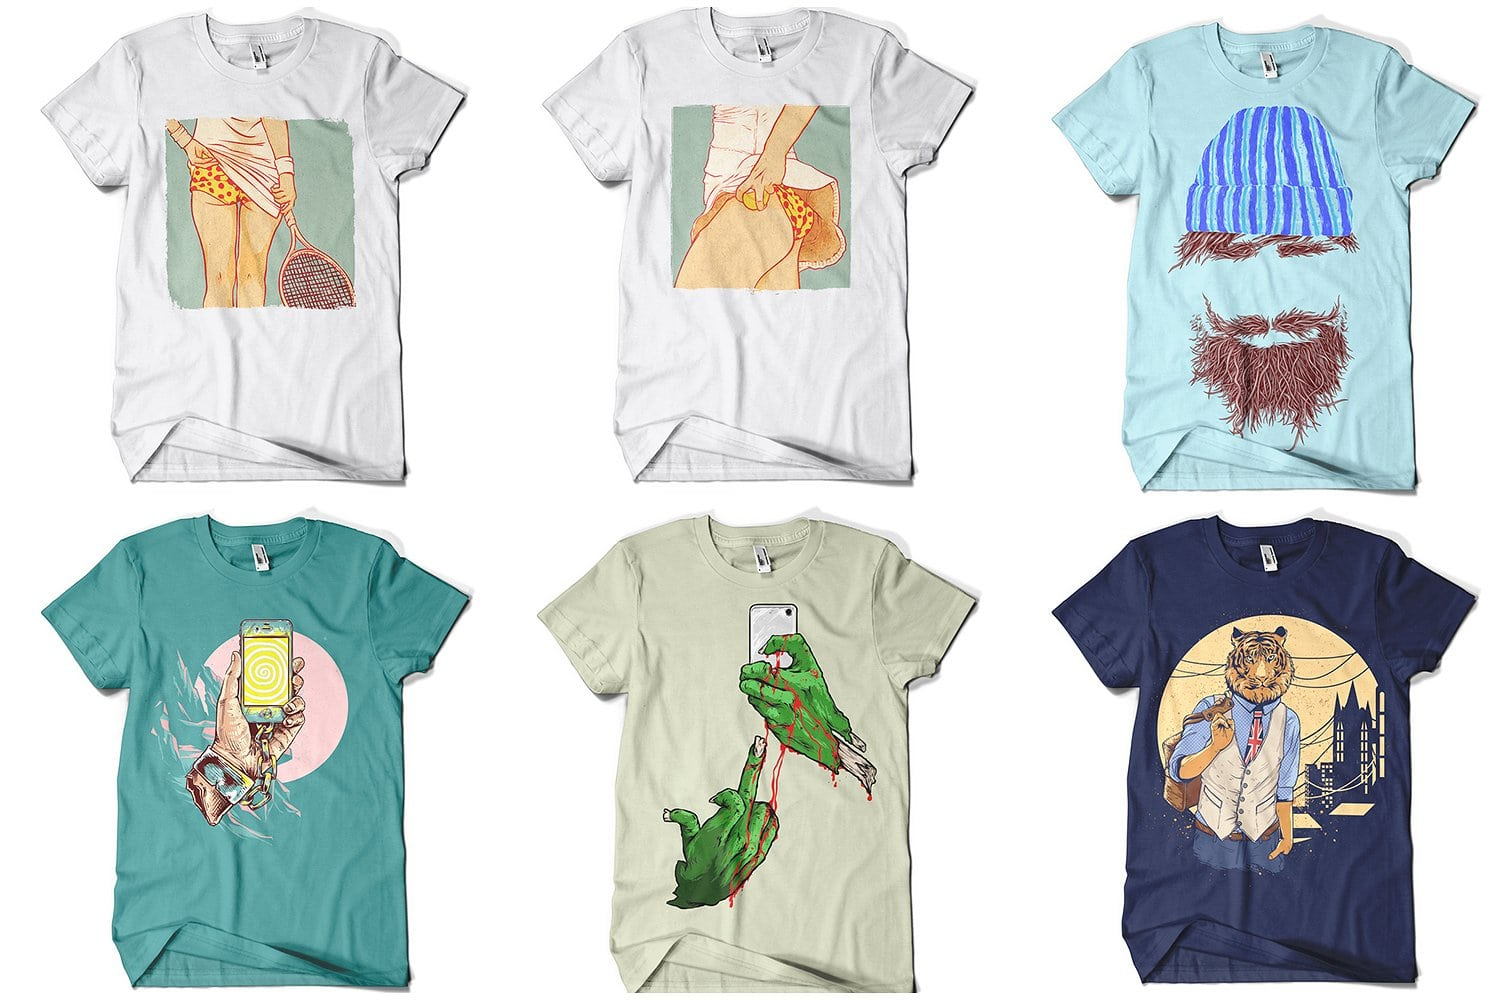 White t-shirts with unusual pictures on it.